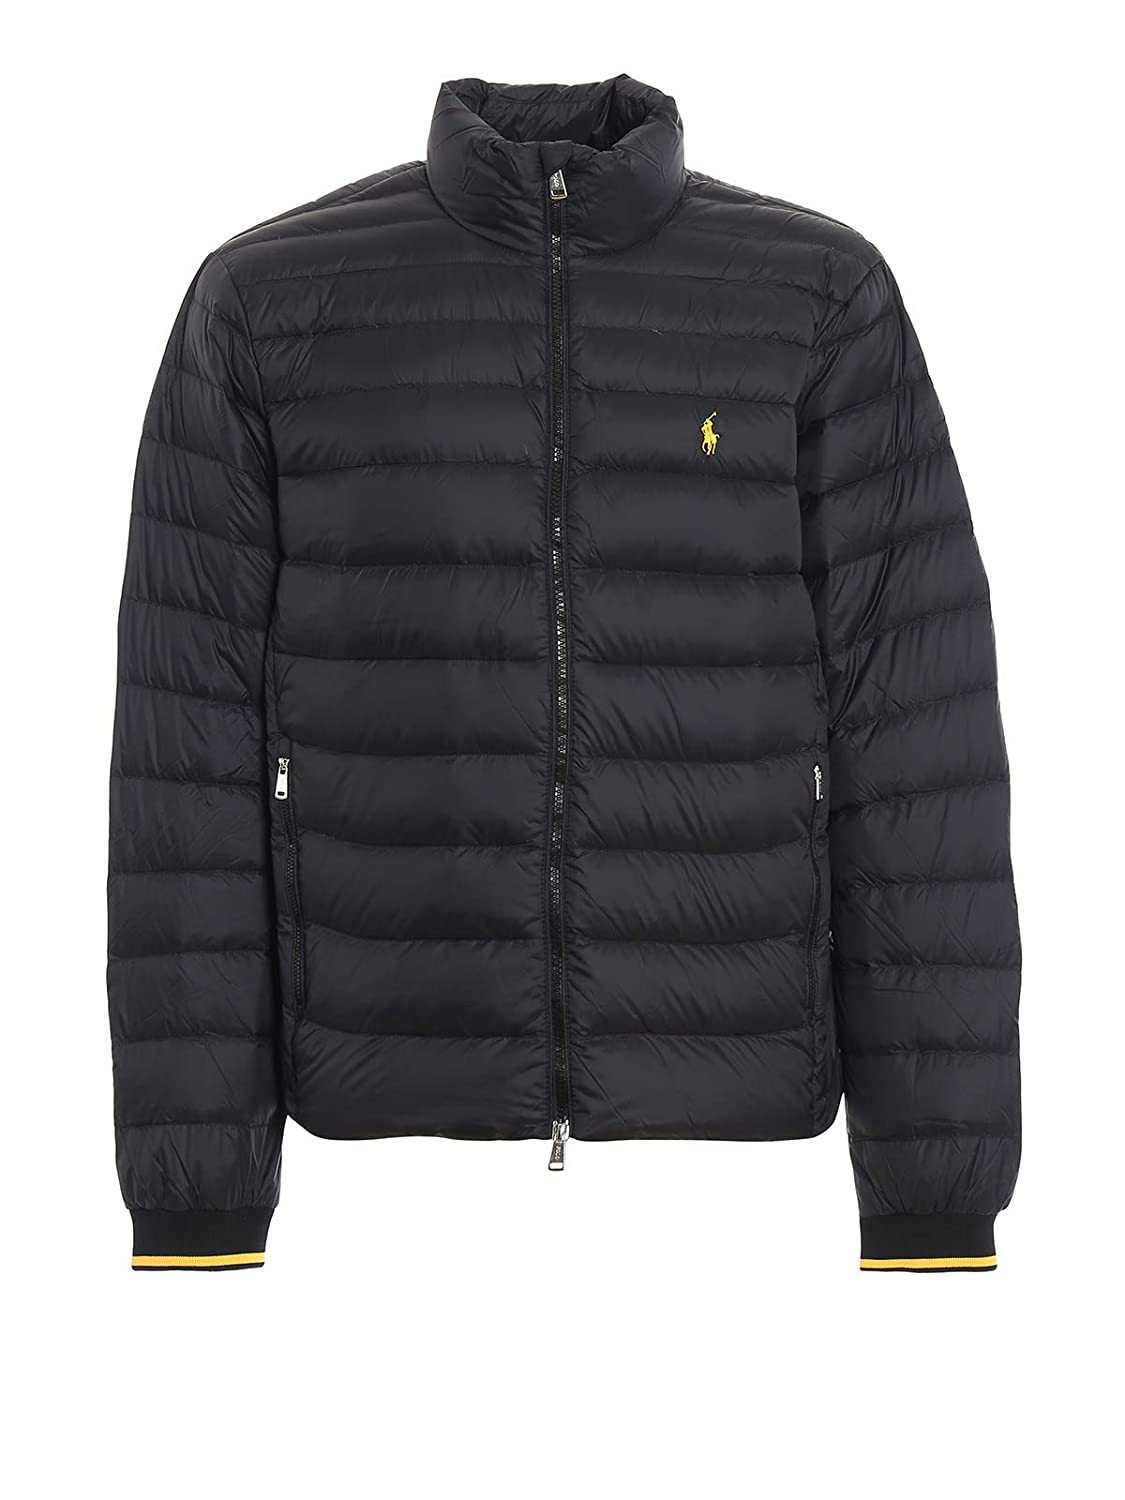 Polo Ralph Lauren Holden v2 Jacket Nero Uomo XL: Amazon.it